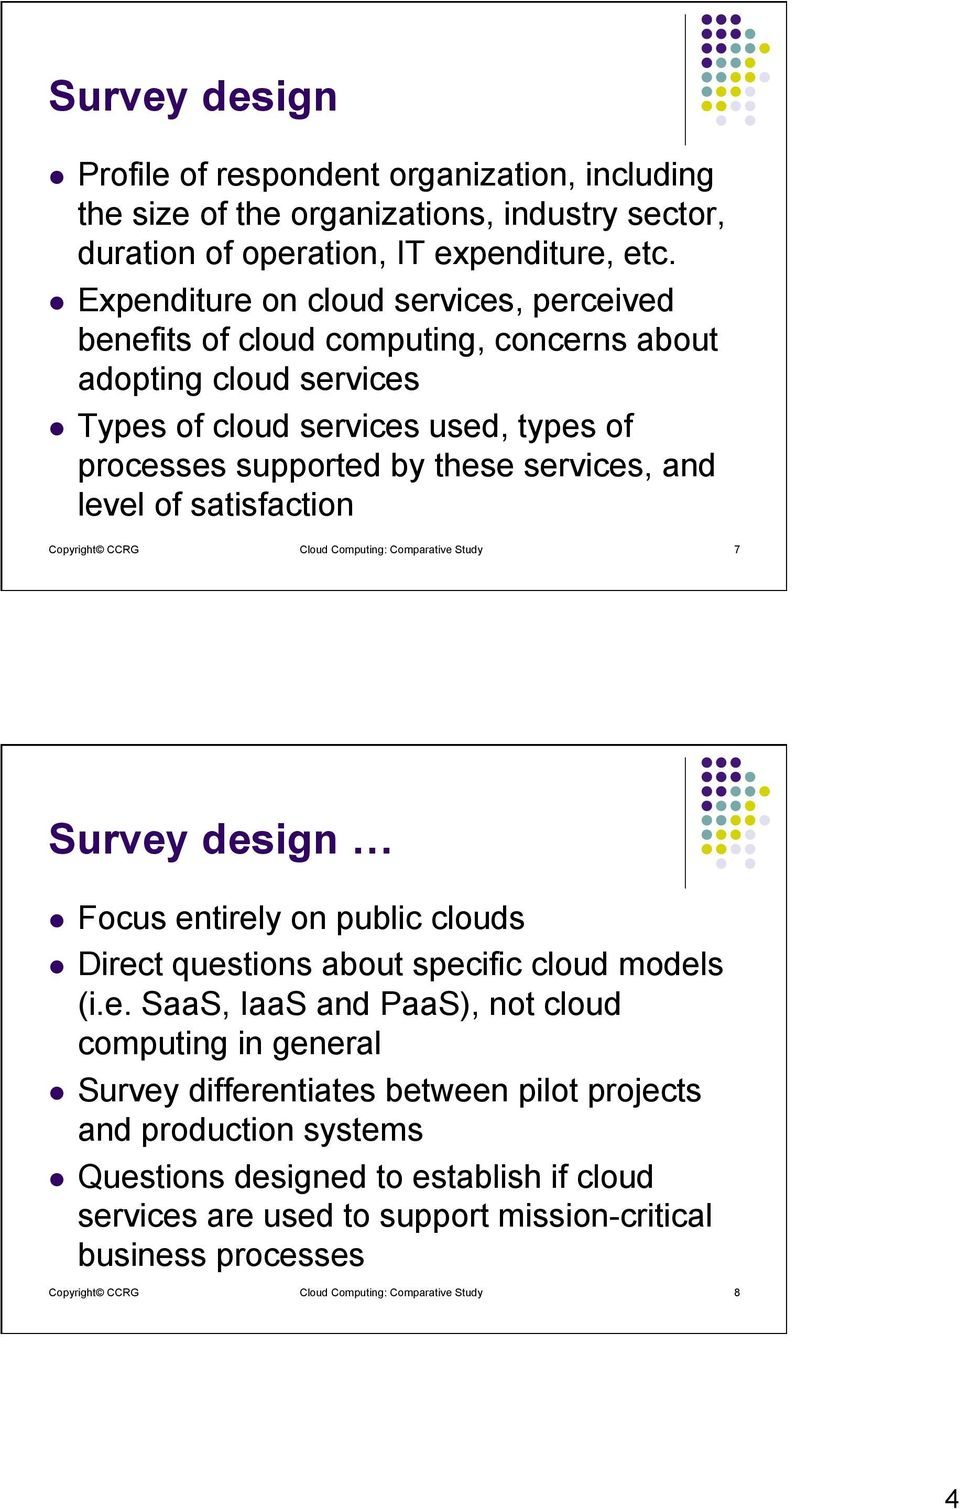 level of satisfaction Copyright CCRG Cloud Computing: Comparative Study 7 Survey design l Focus entirely on public clouds l Direct questions about specific cloud models (i.e. SaaS, IaaS and PaaS),